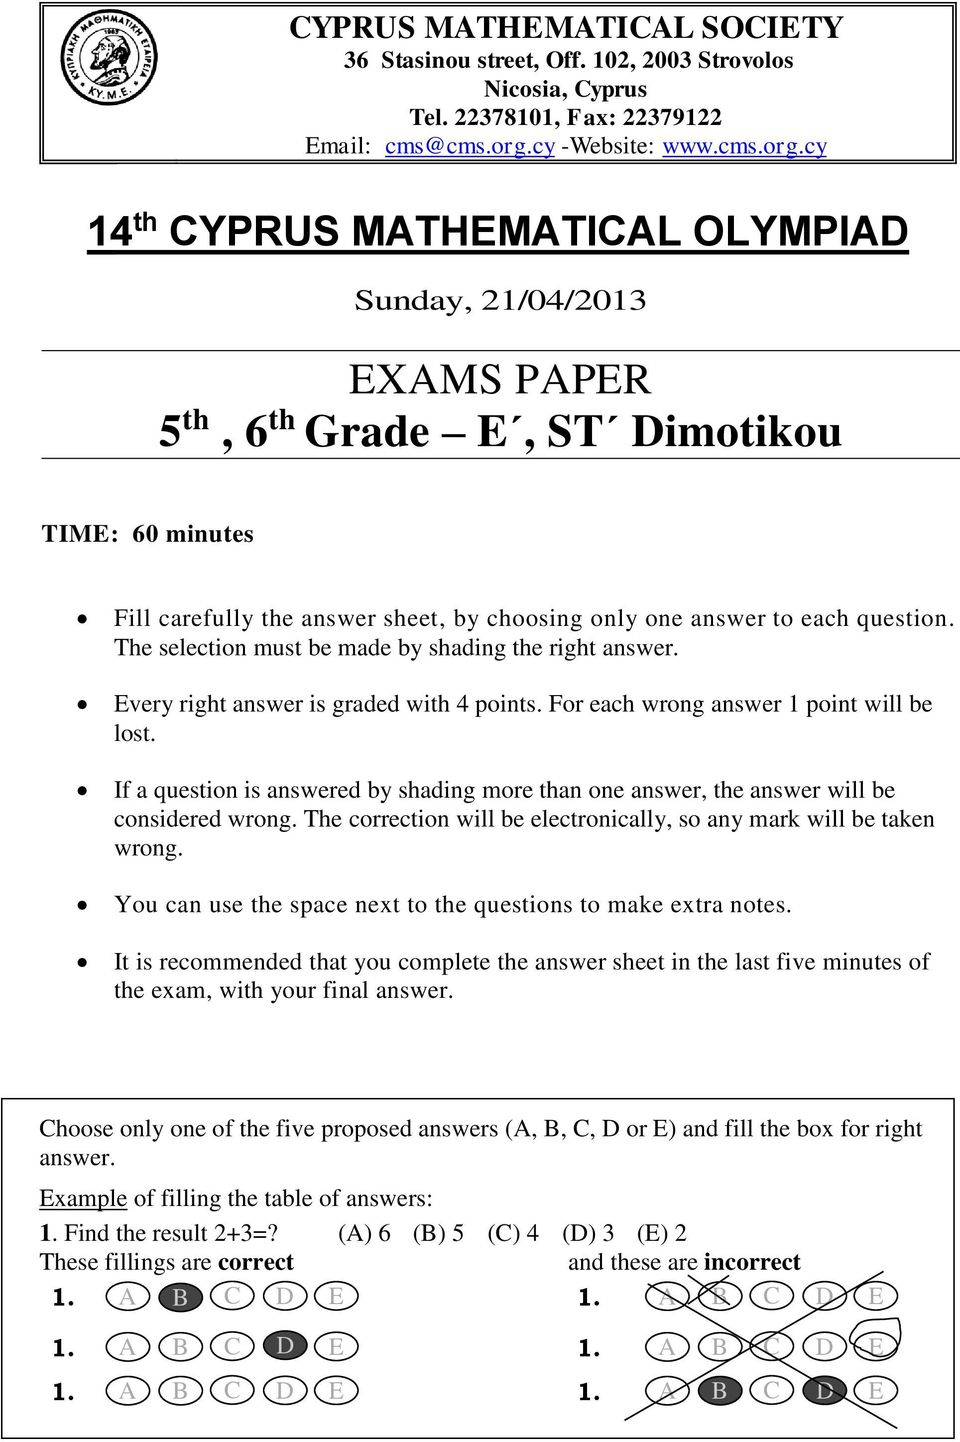 cy 4 th CYPRUS MATHEMATICAL OLYMPIAD Sunday, /04/0 EXAMS PAPER 5 th, 6 th Grade E, ST Dimotikou TIME: 60 minutes Fill carefully the answer sheet, by choosing only one answer to each question.